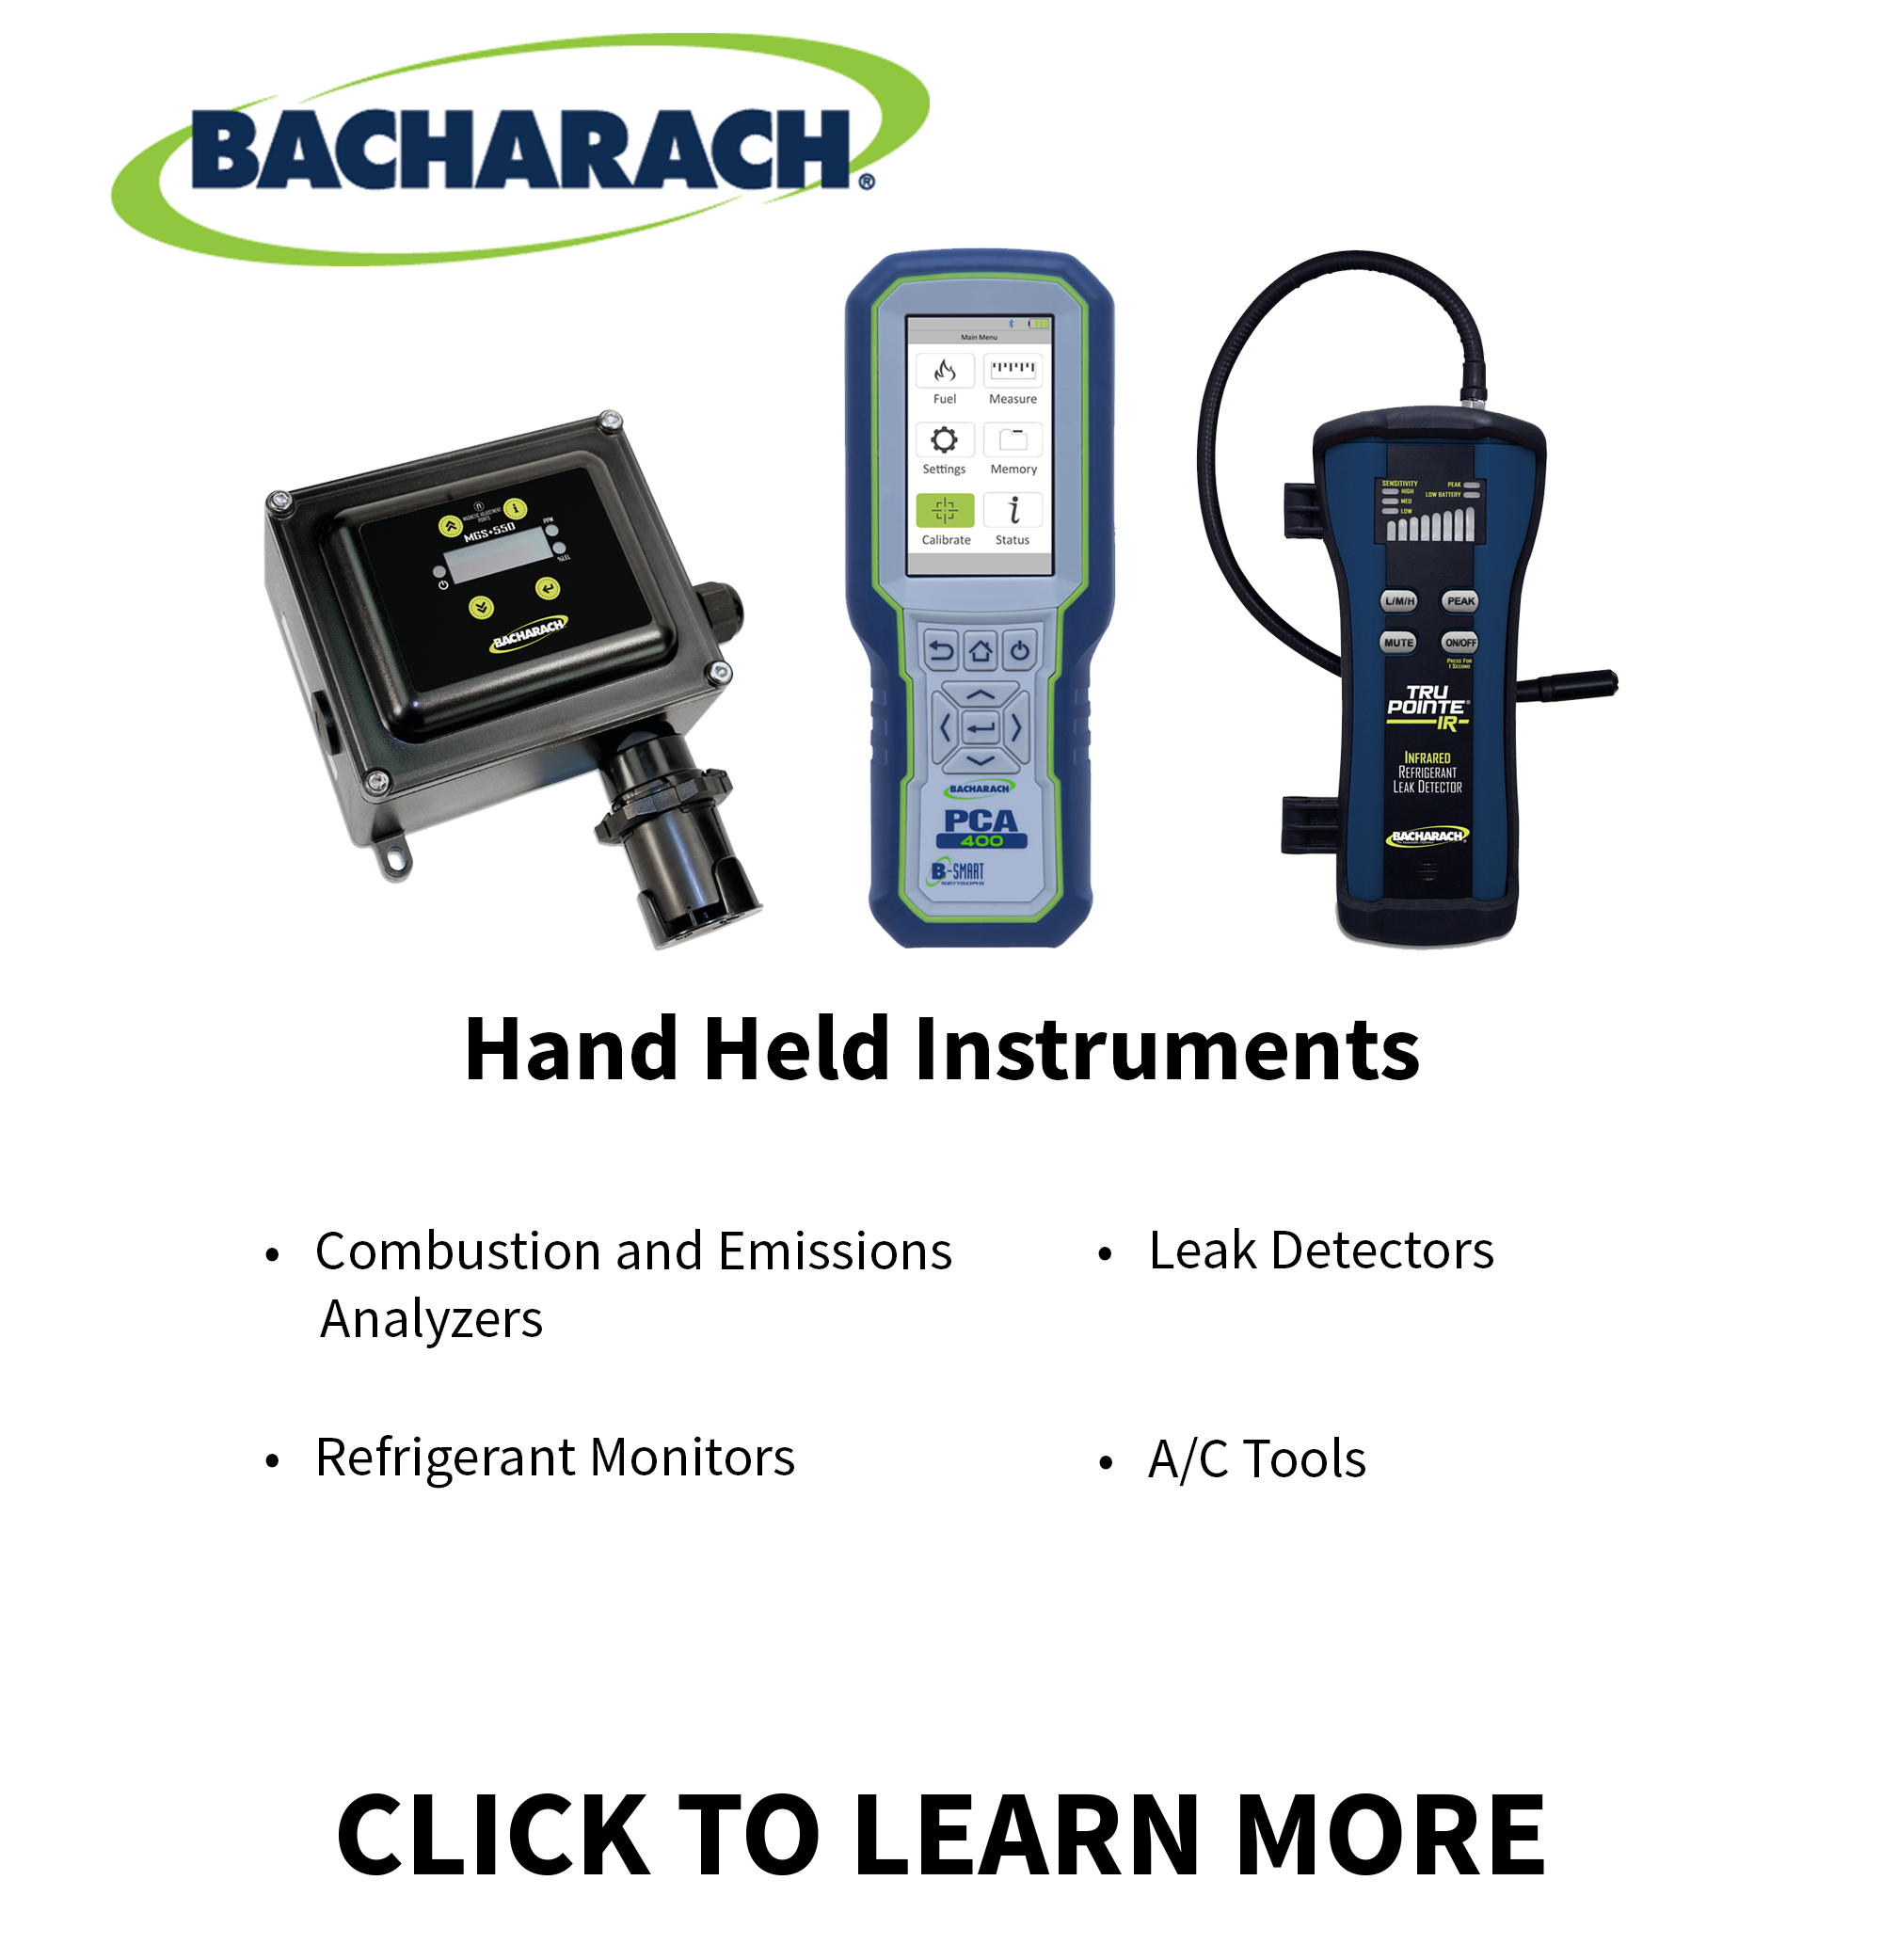 Ohio Valley Industrial Services- Bacharach Hand Held Instruments